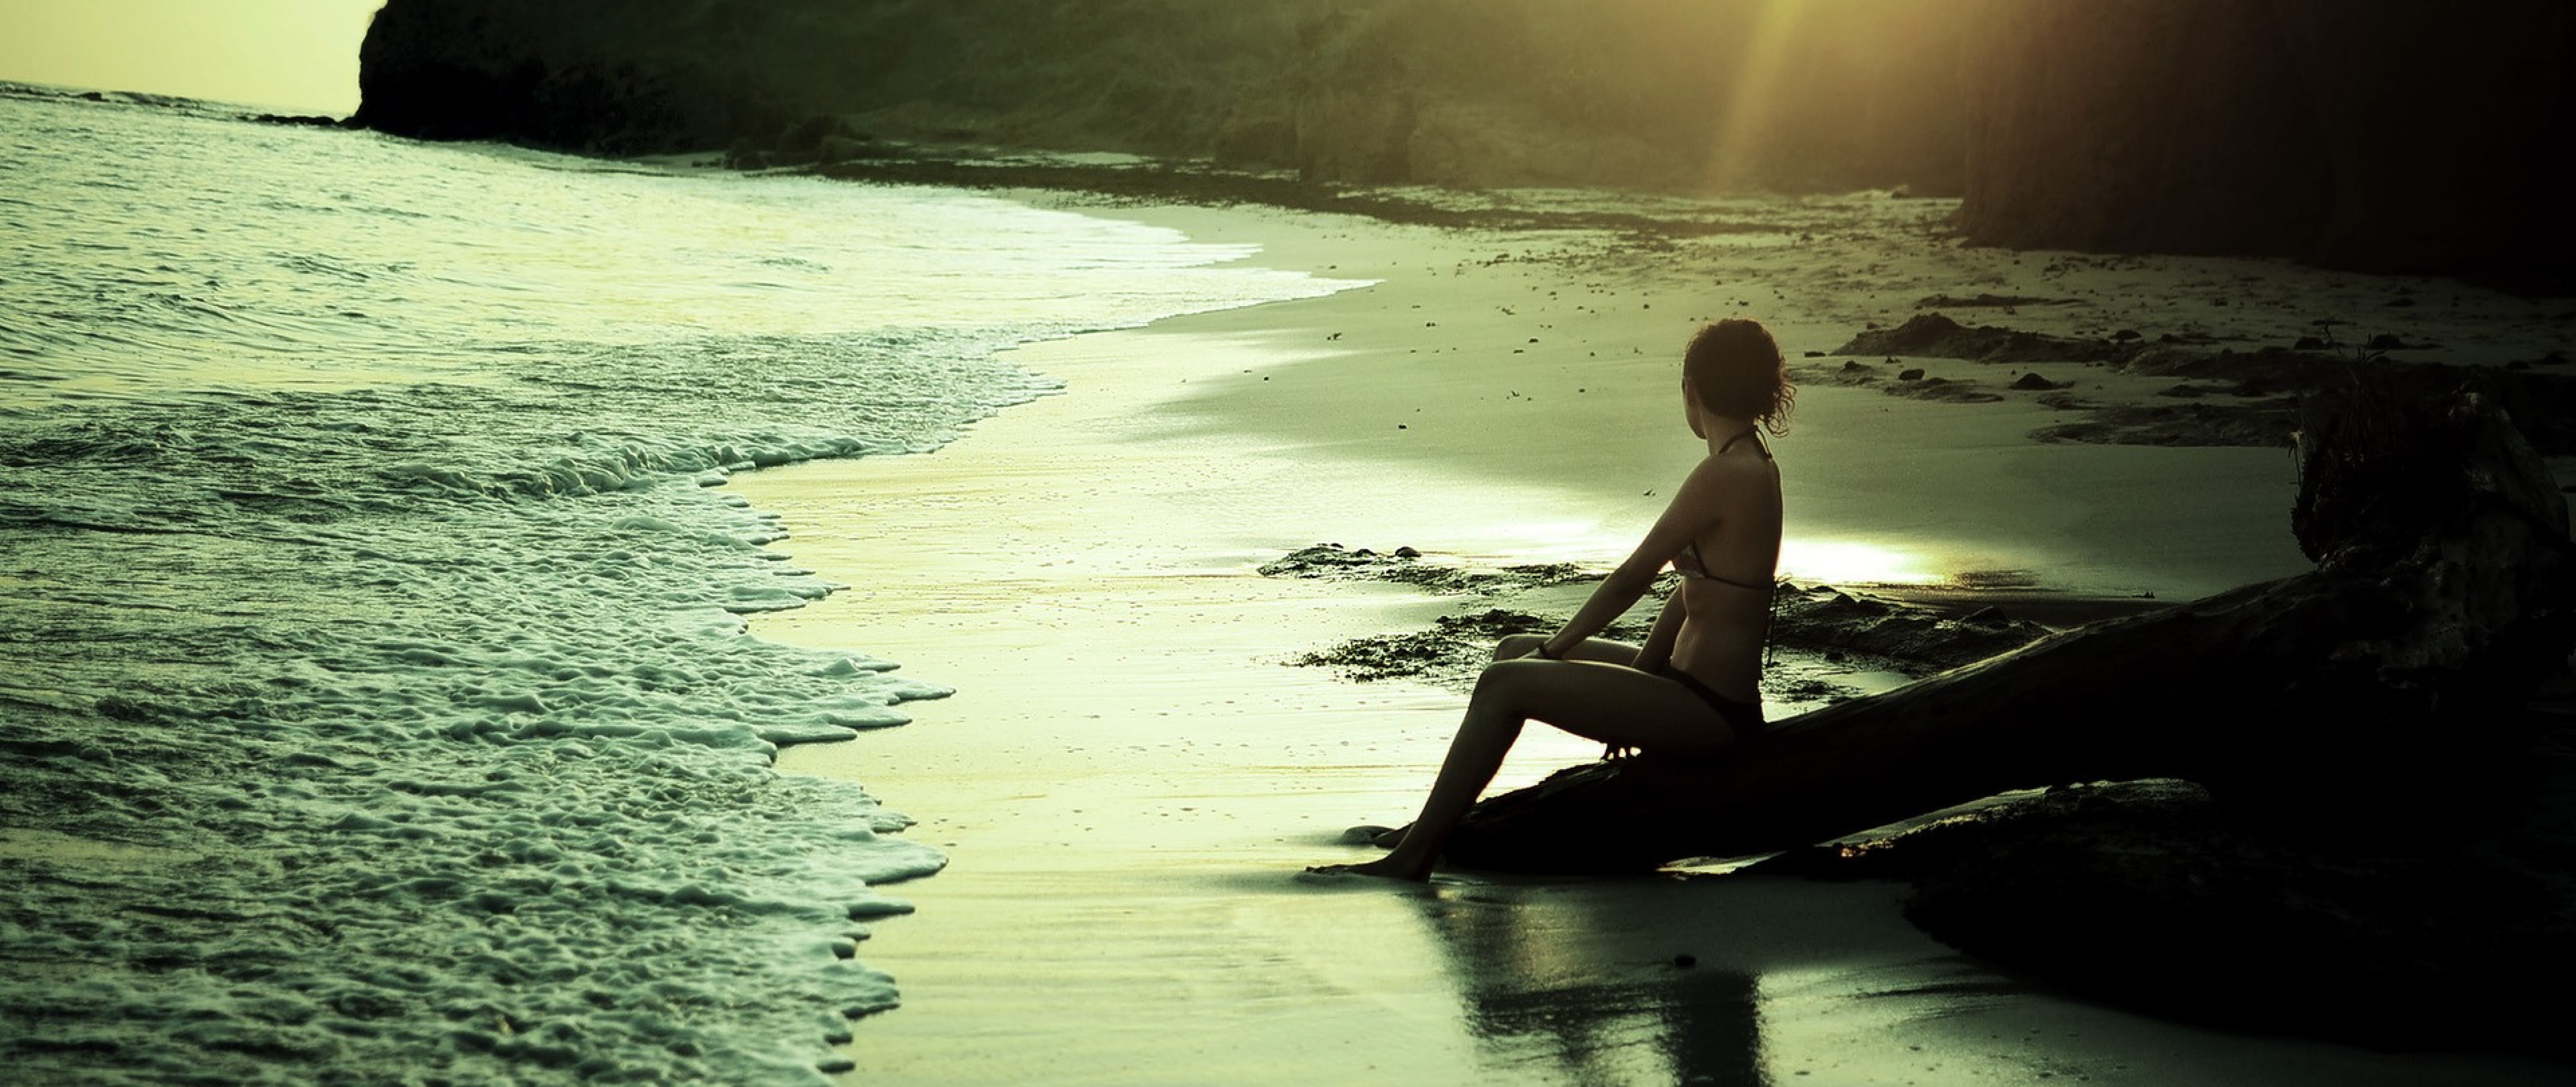 Relaxing On The Beach Free Full Hd Wallpaper For Desktop And Mobiles